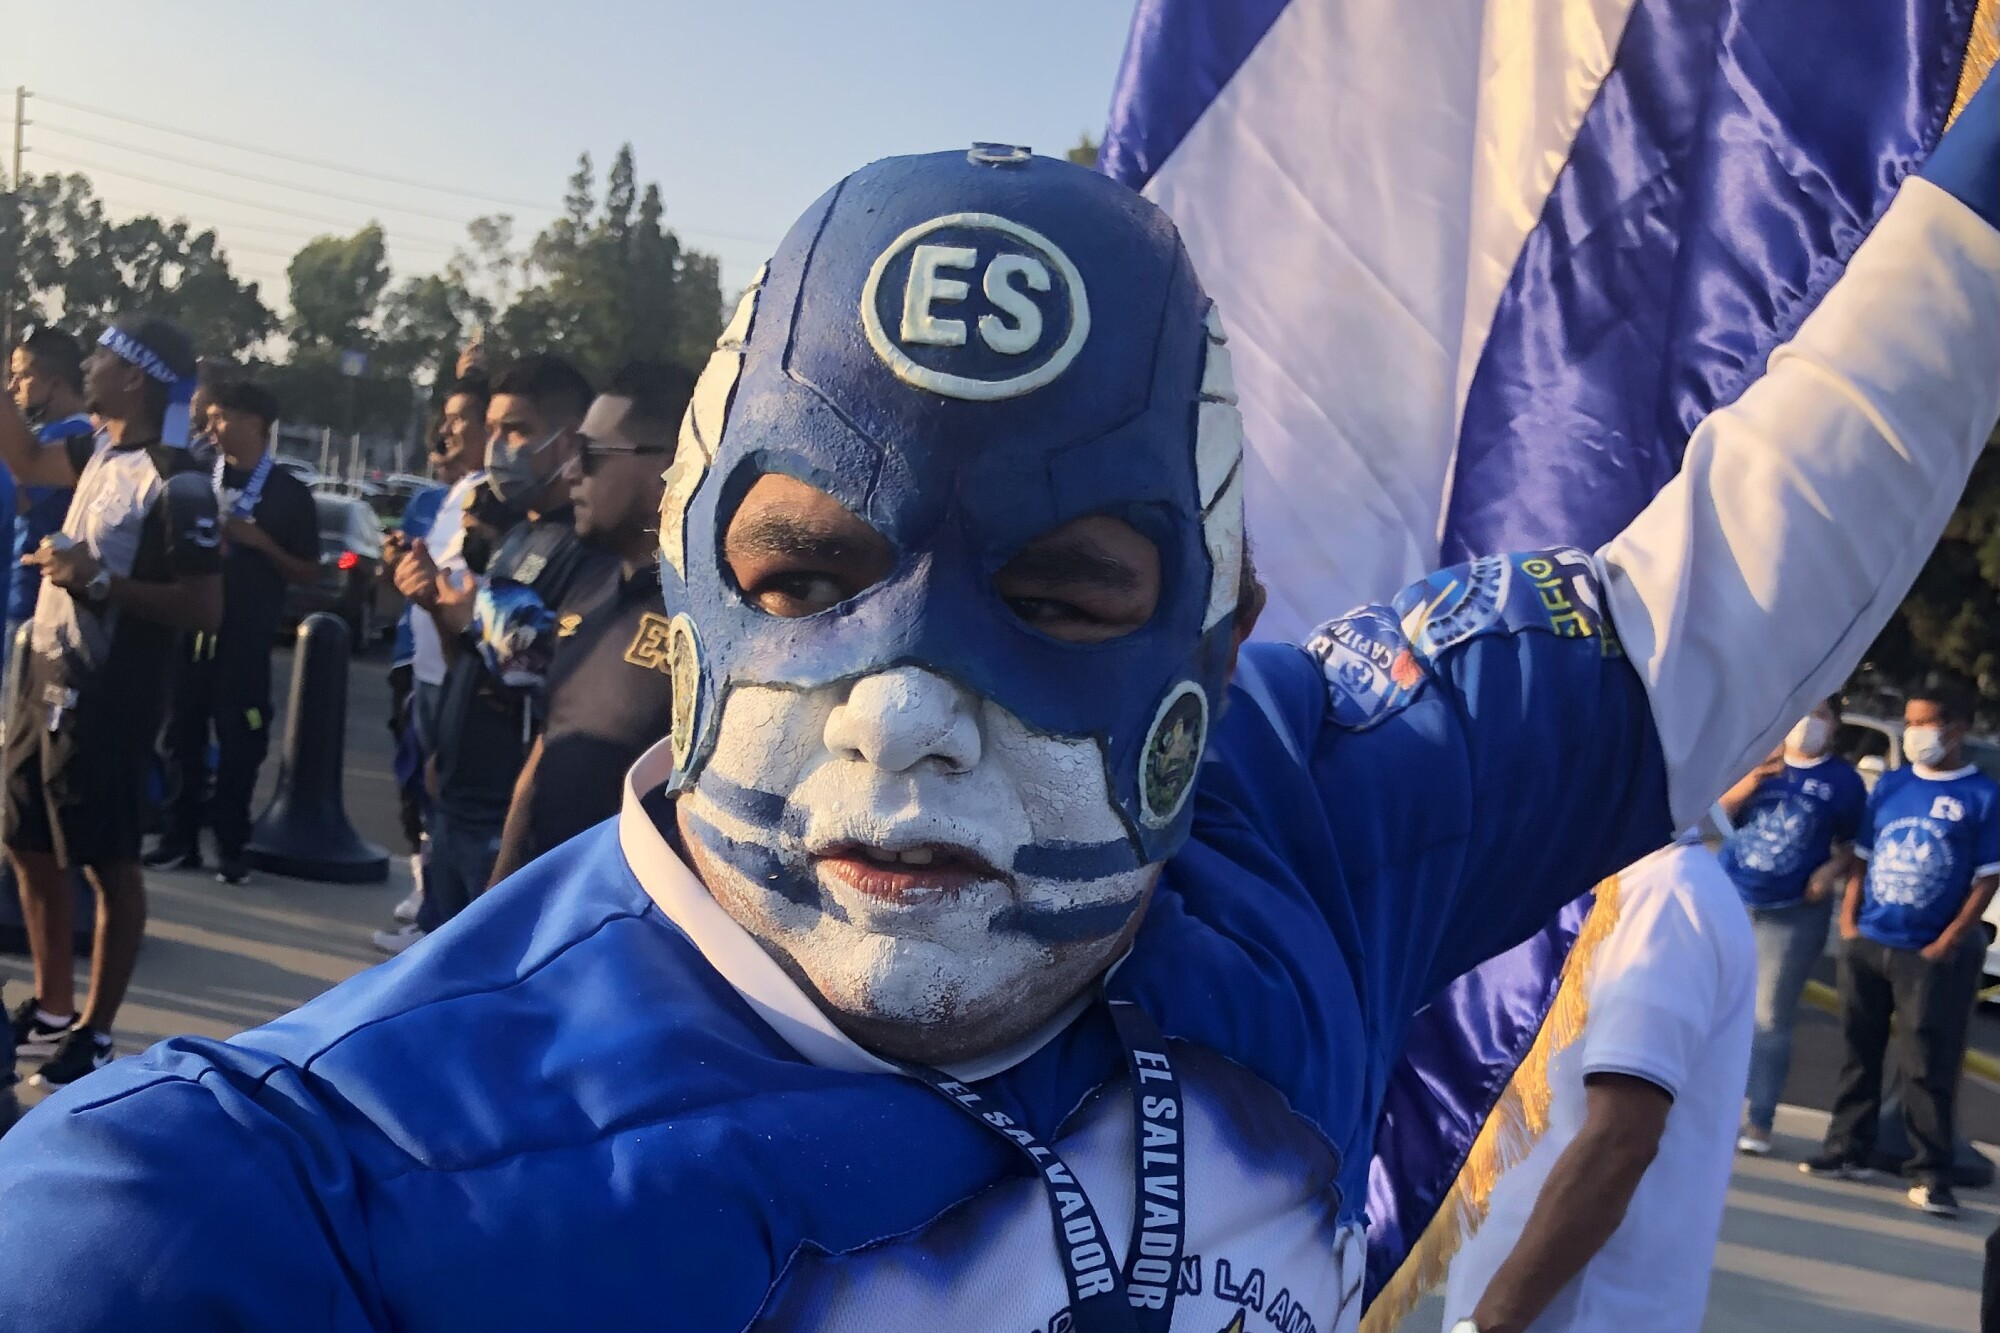 Mario Valladares, of Los Angeles, dresses up as Capitan Cuscatleco and waves the Salvadoran flag